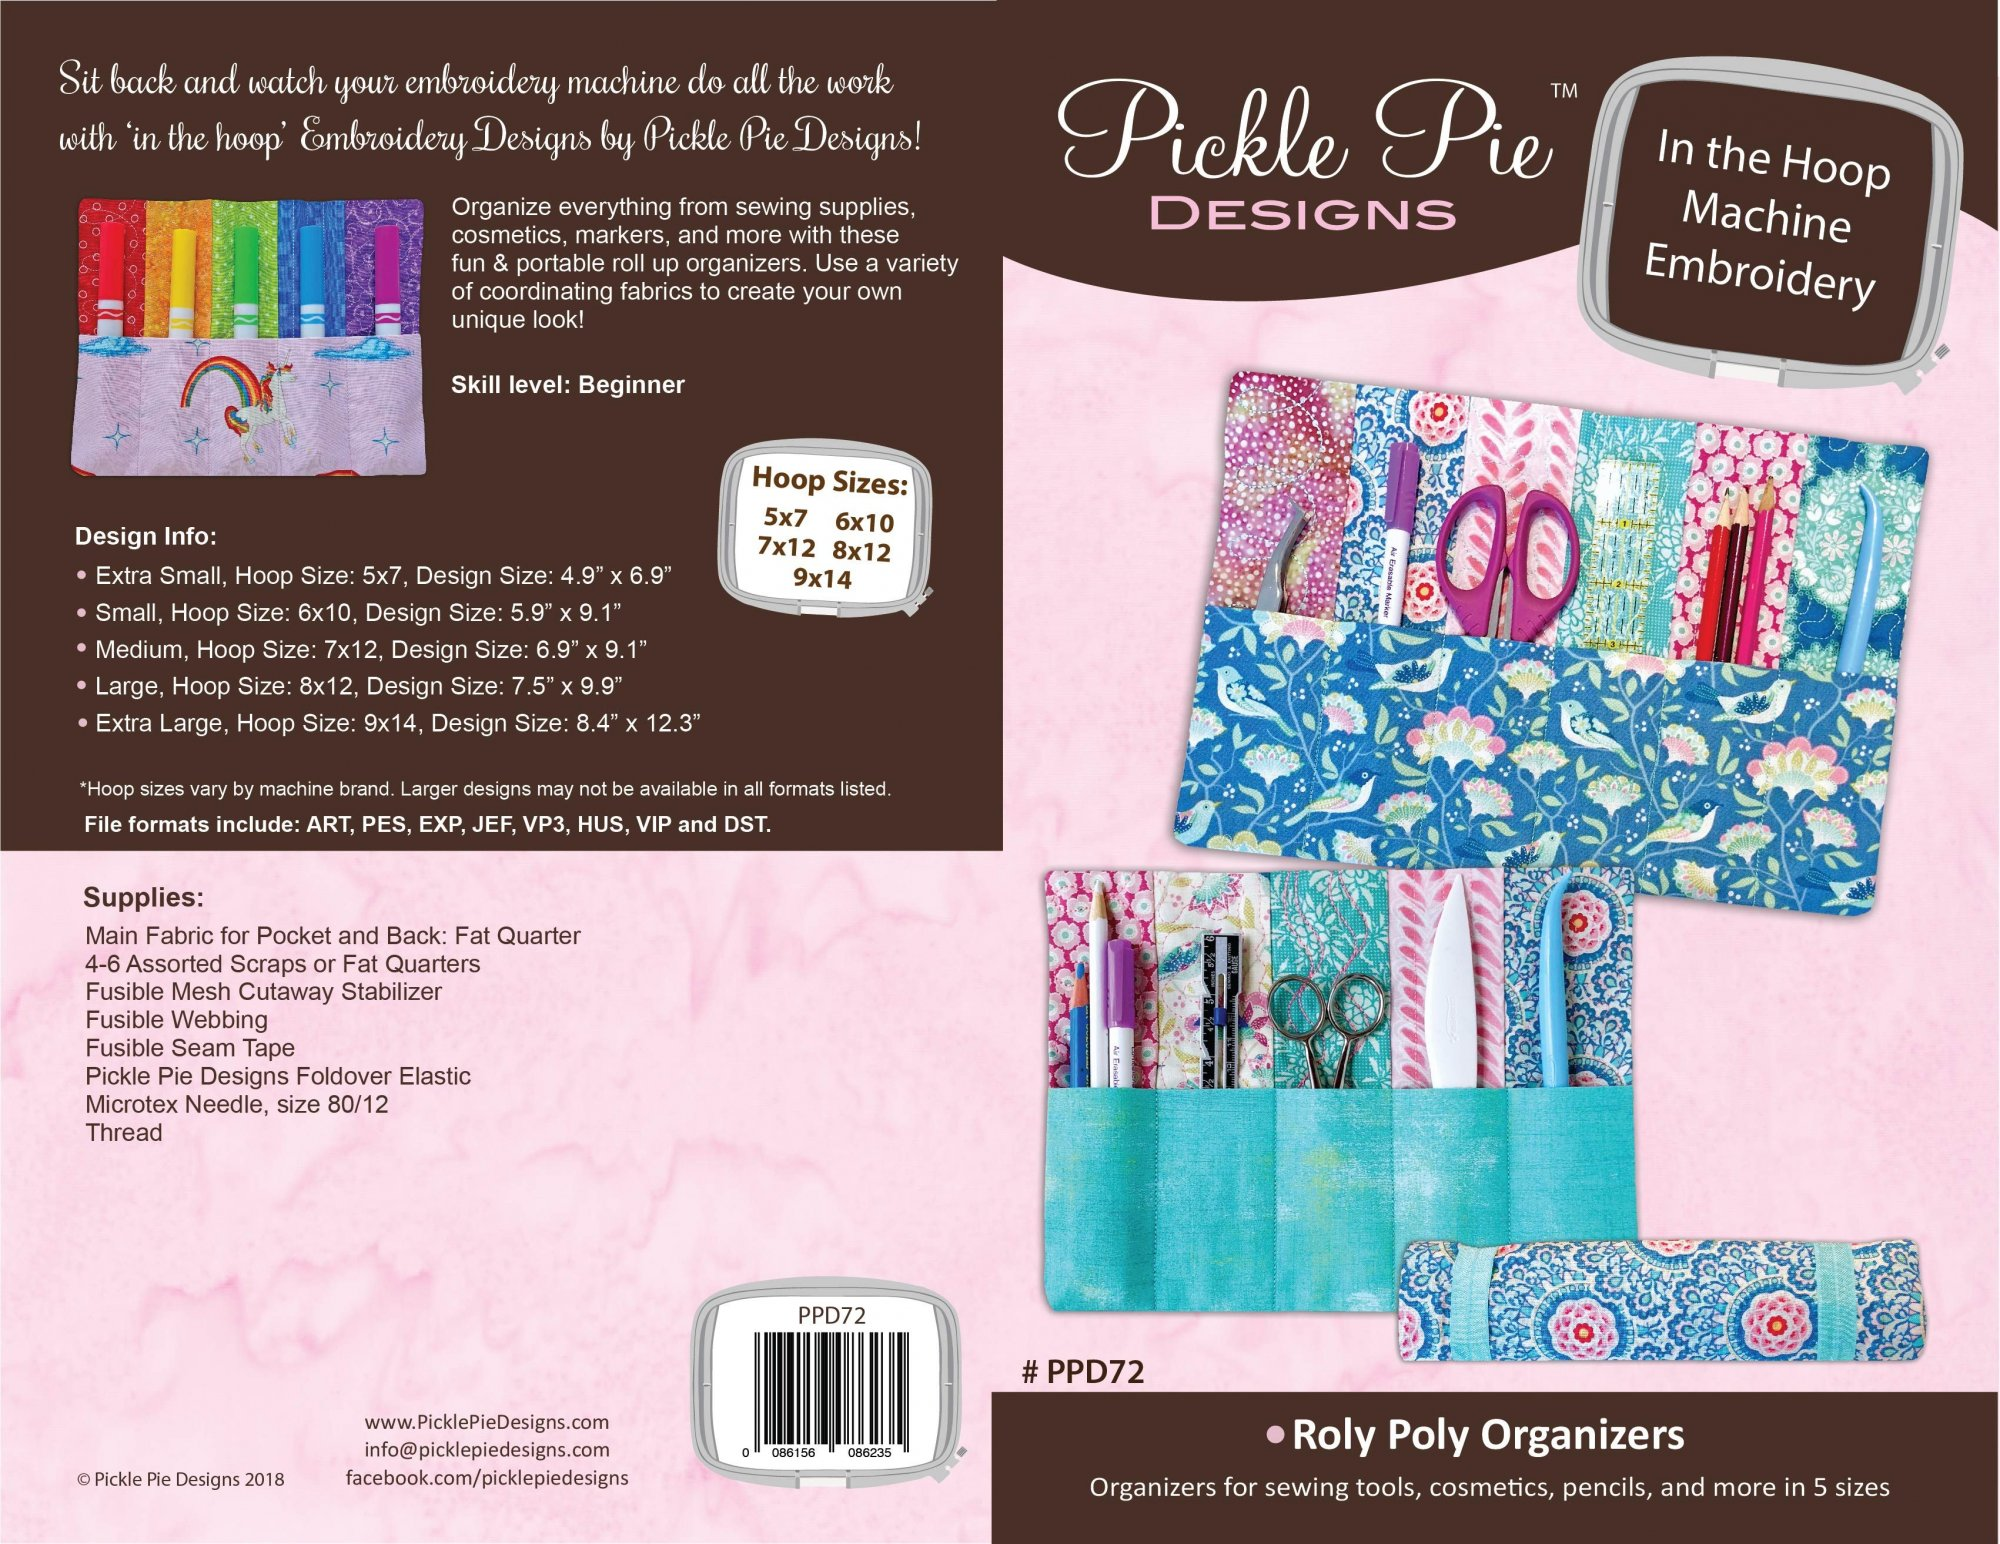 Roly Poly Organizers